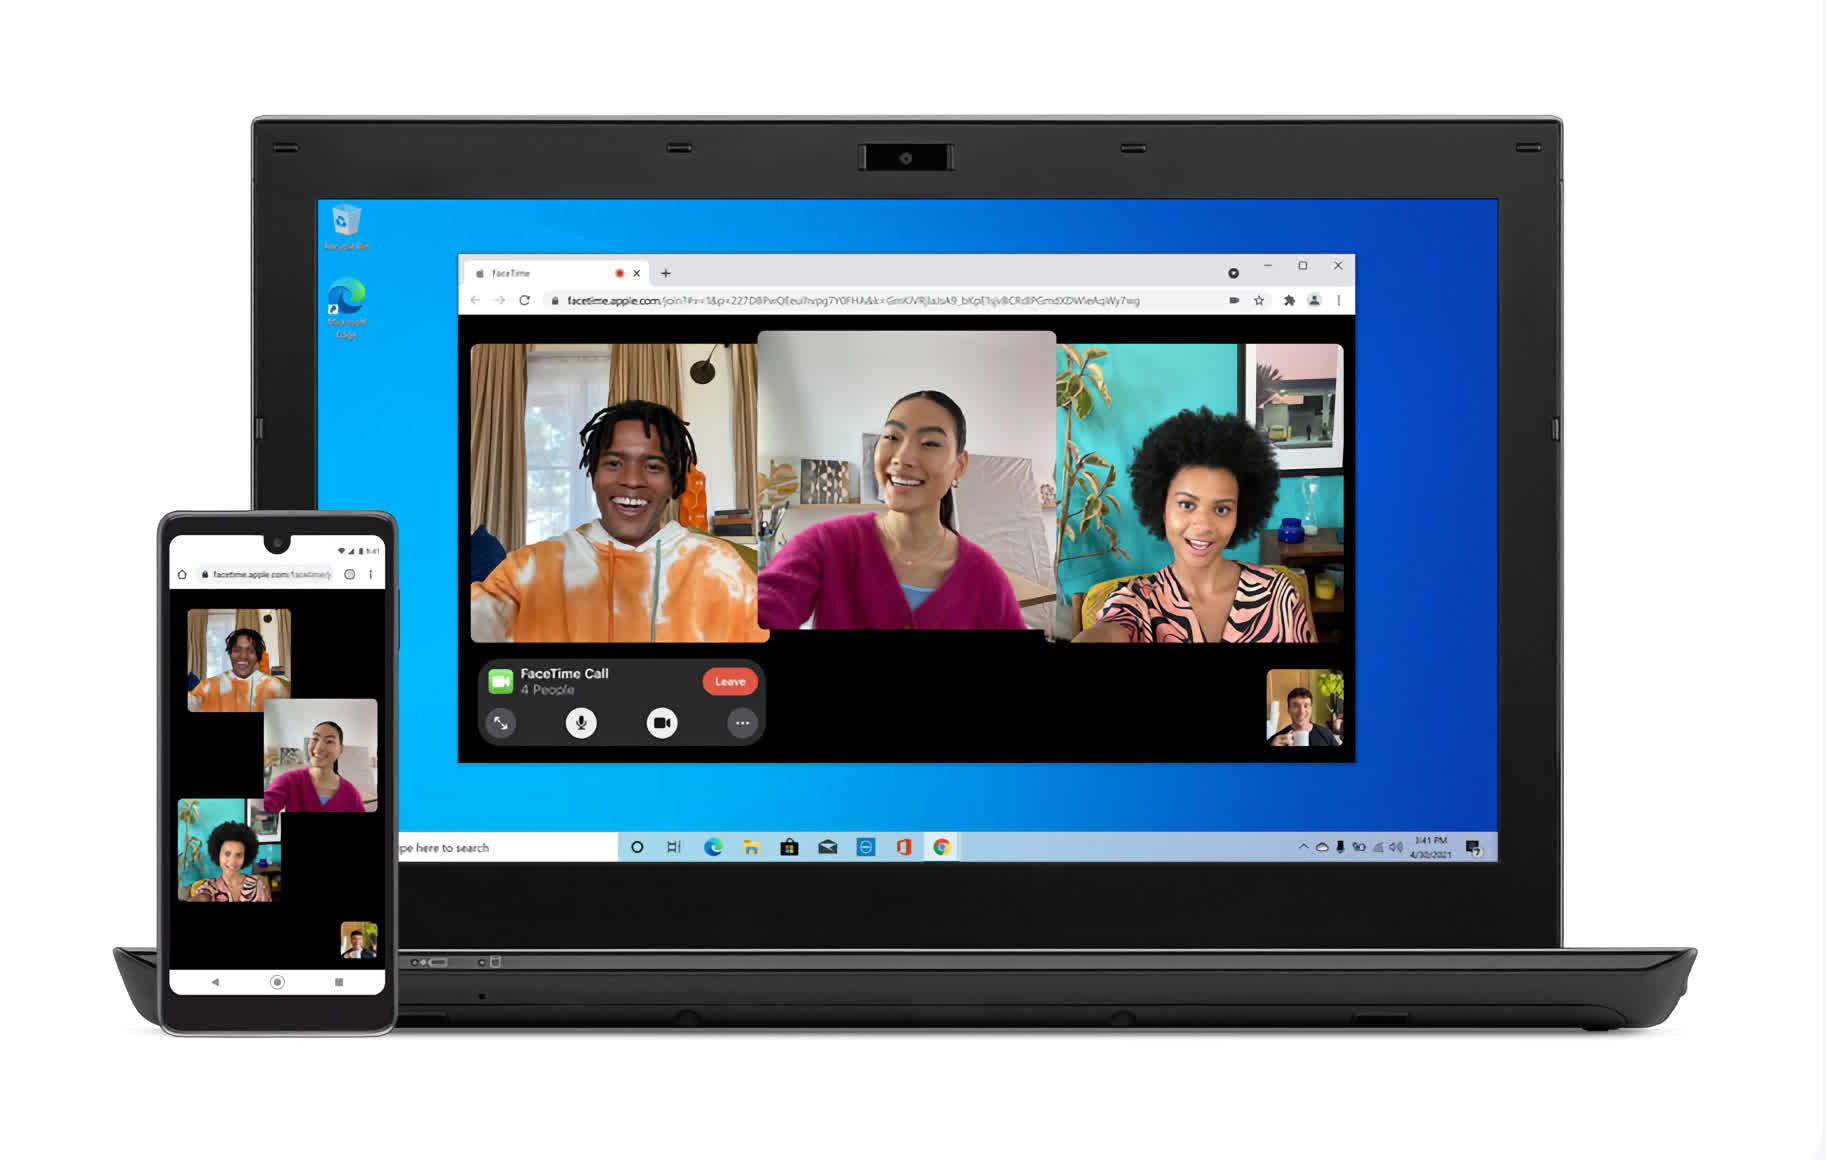 Apple is bringing FaceTime to Android and Windows... kind of